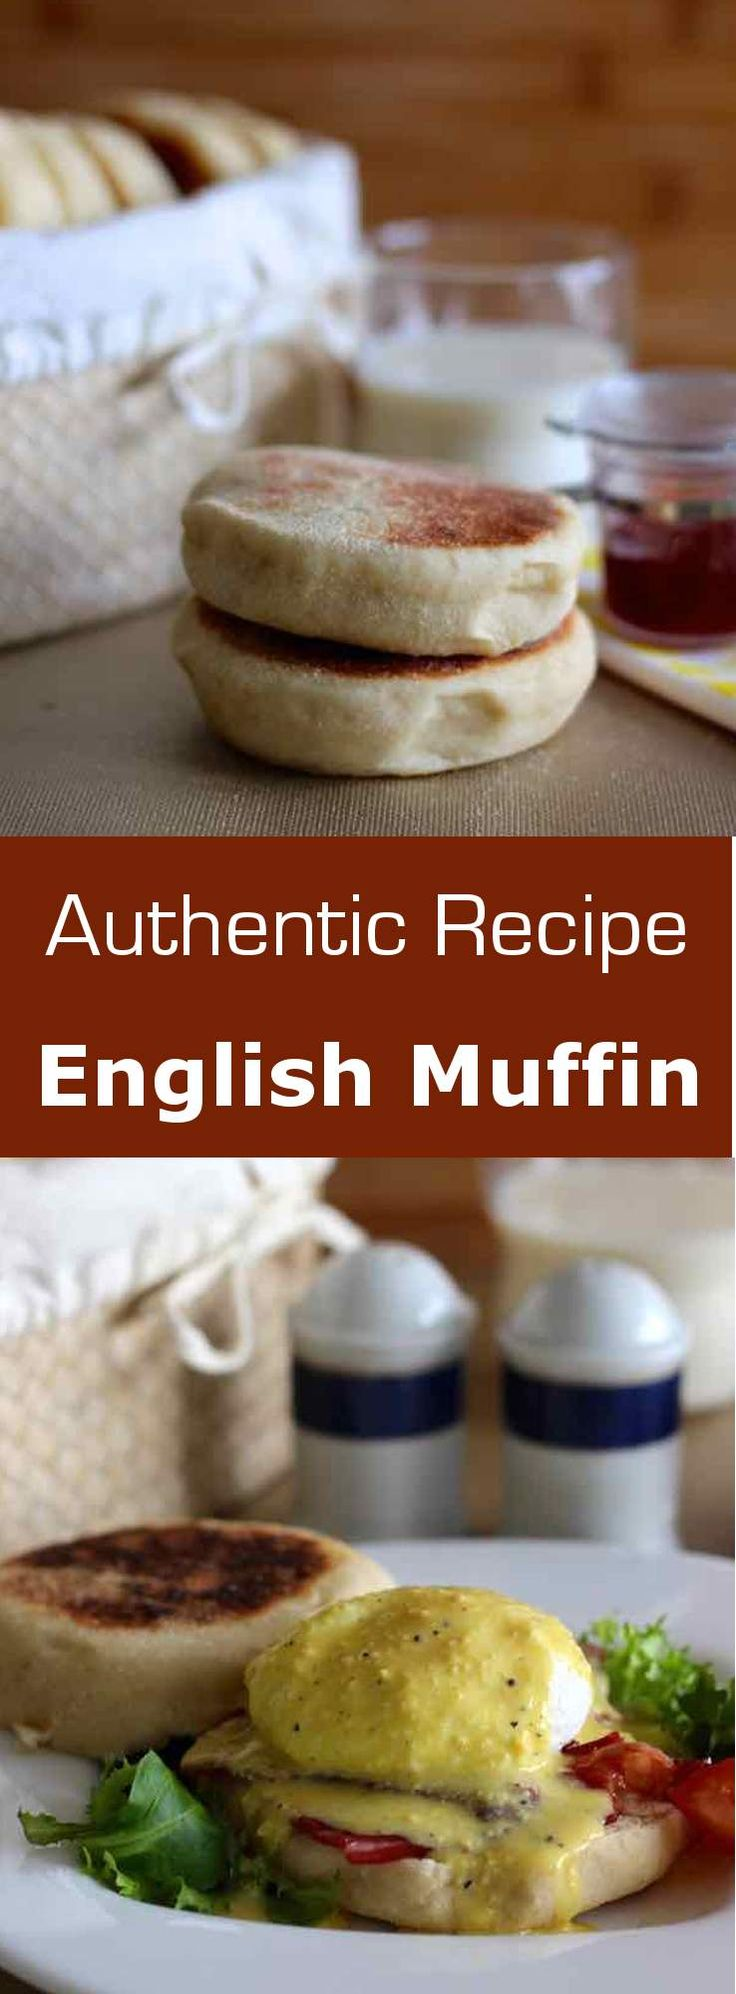 The English muffin is a famous small, soft and light round bread known all over the world, which is as good with a savory filling as with jam.…